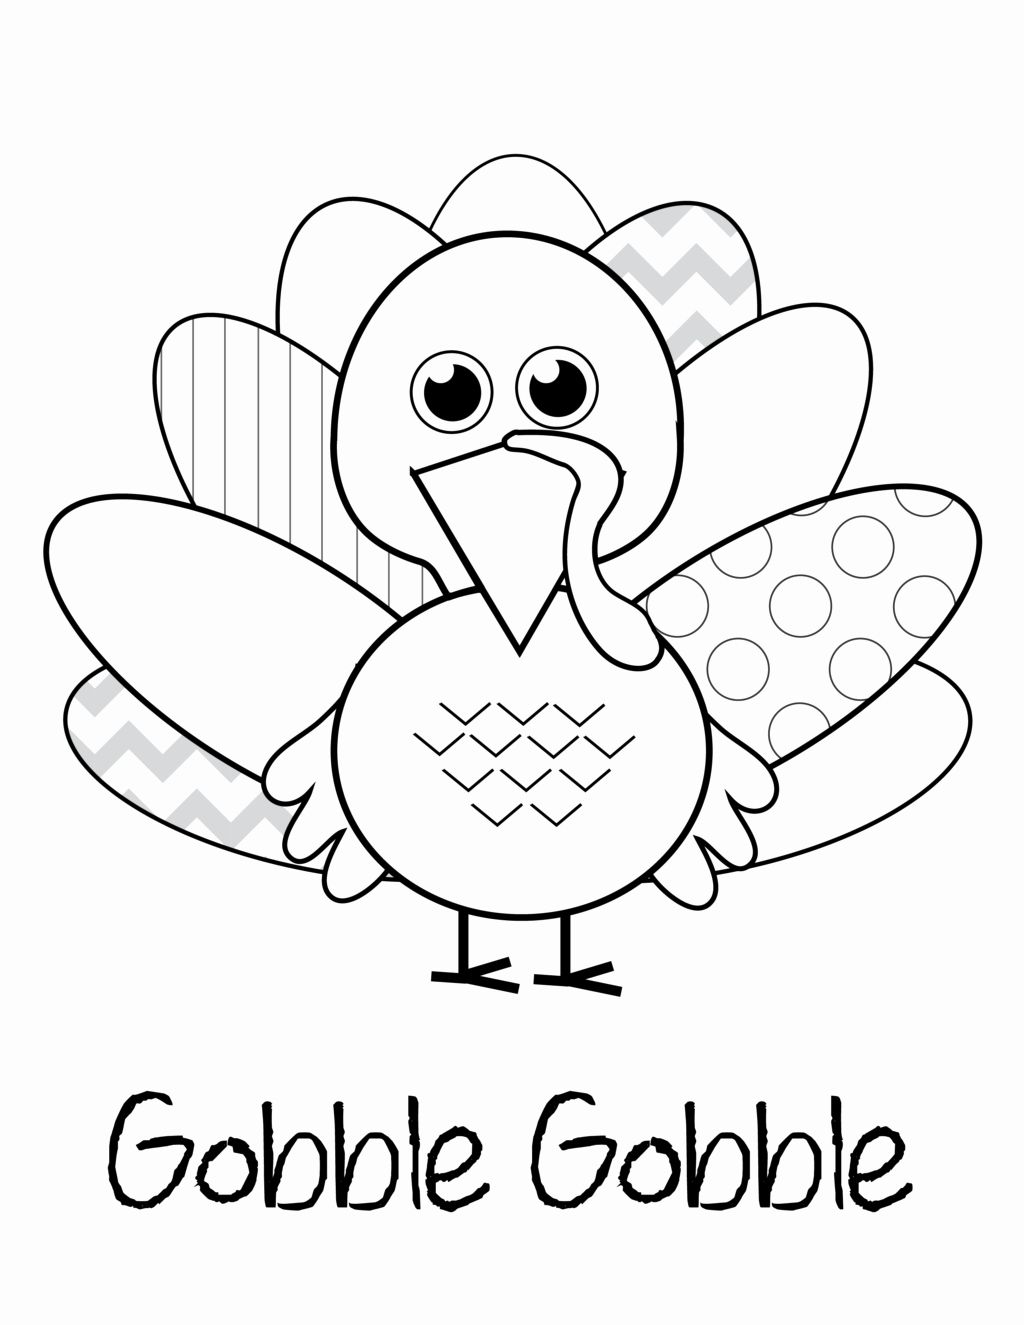 Thanksgiving 2015 Coloring Pages Beautiful Coloring Book World Happy Thanks Turkey Coloring Pages Thanksgiving Coloring Sheets Free Thanksgiving Coloring Pages